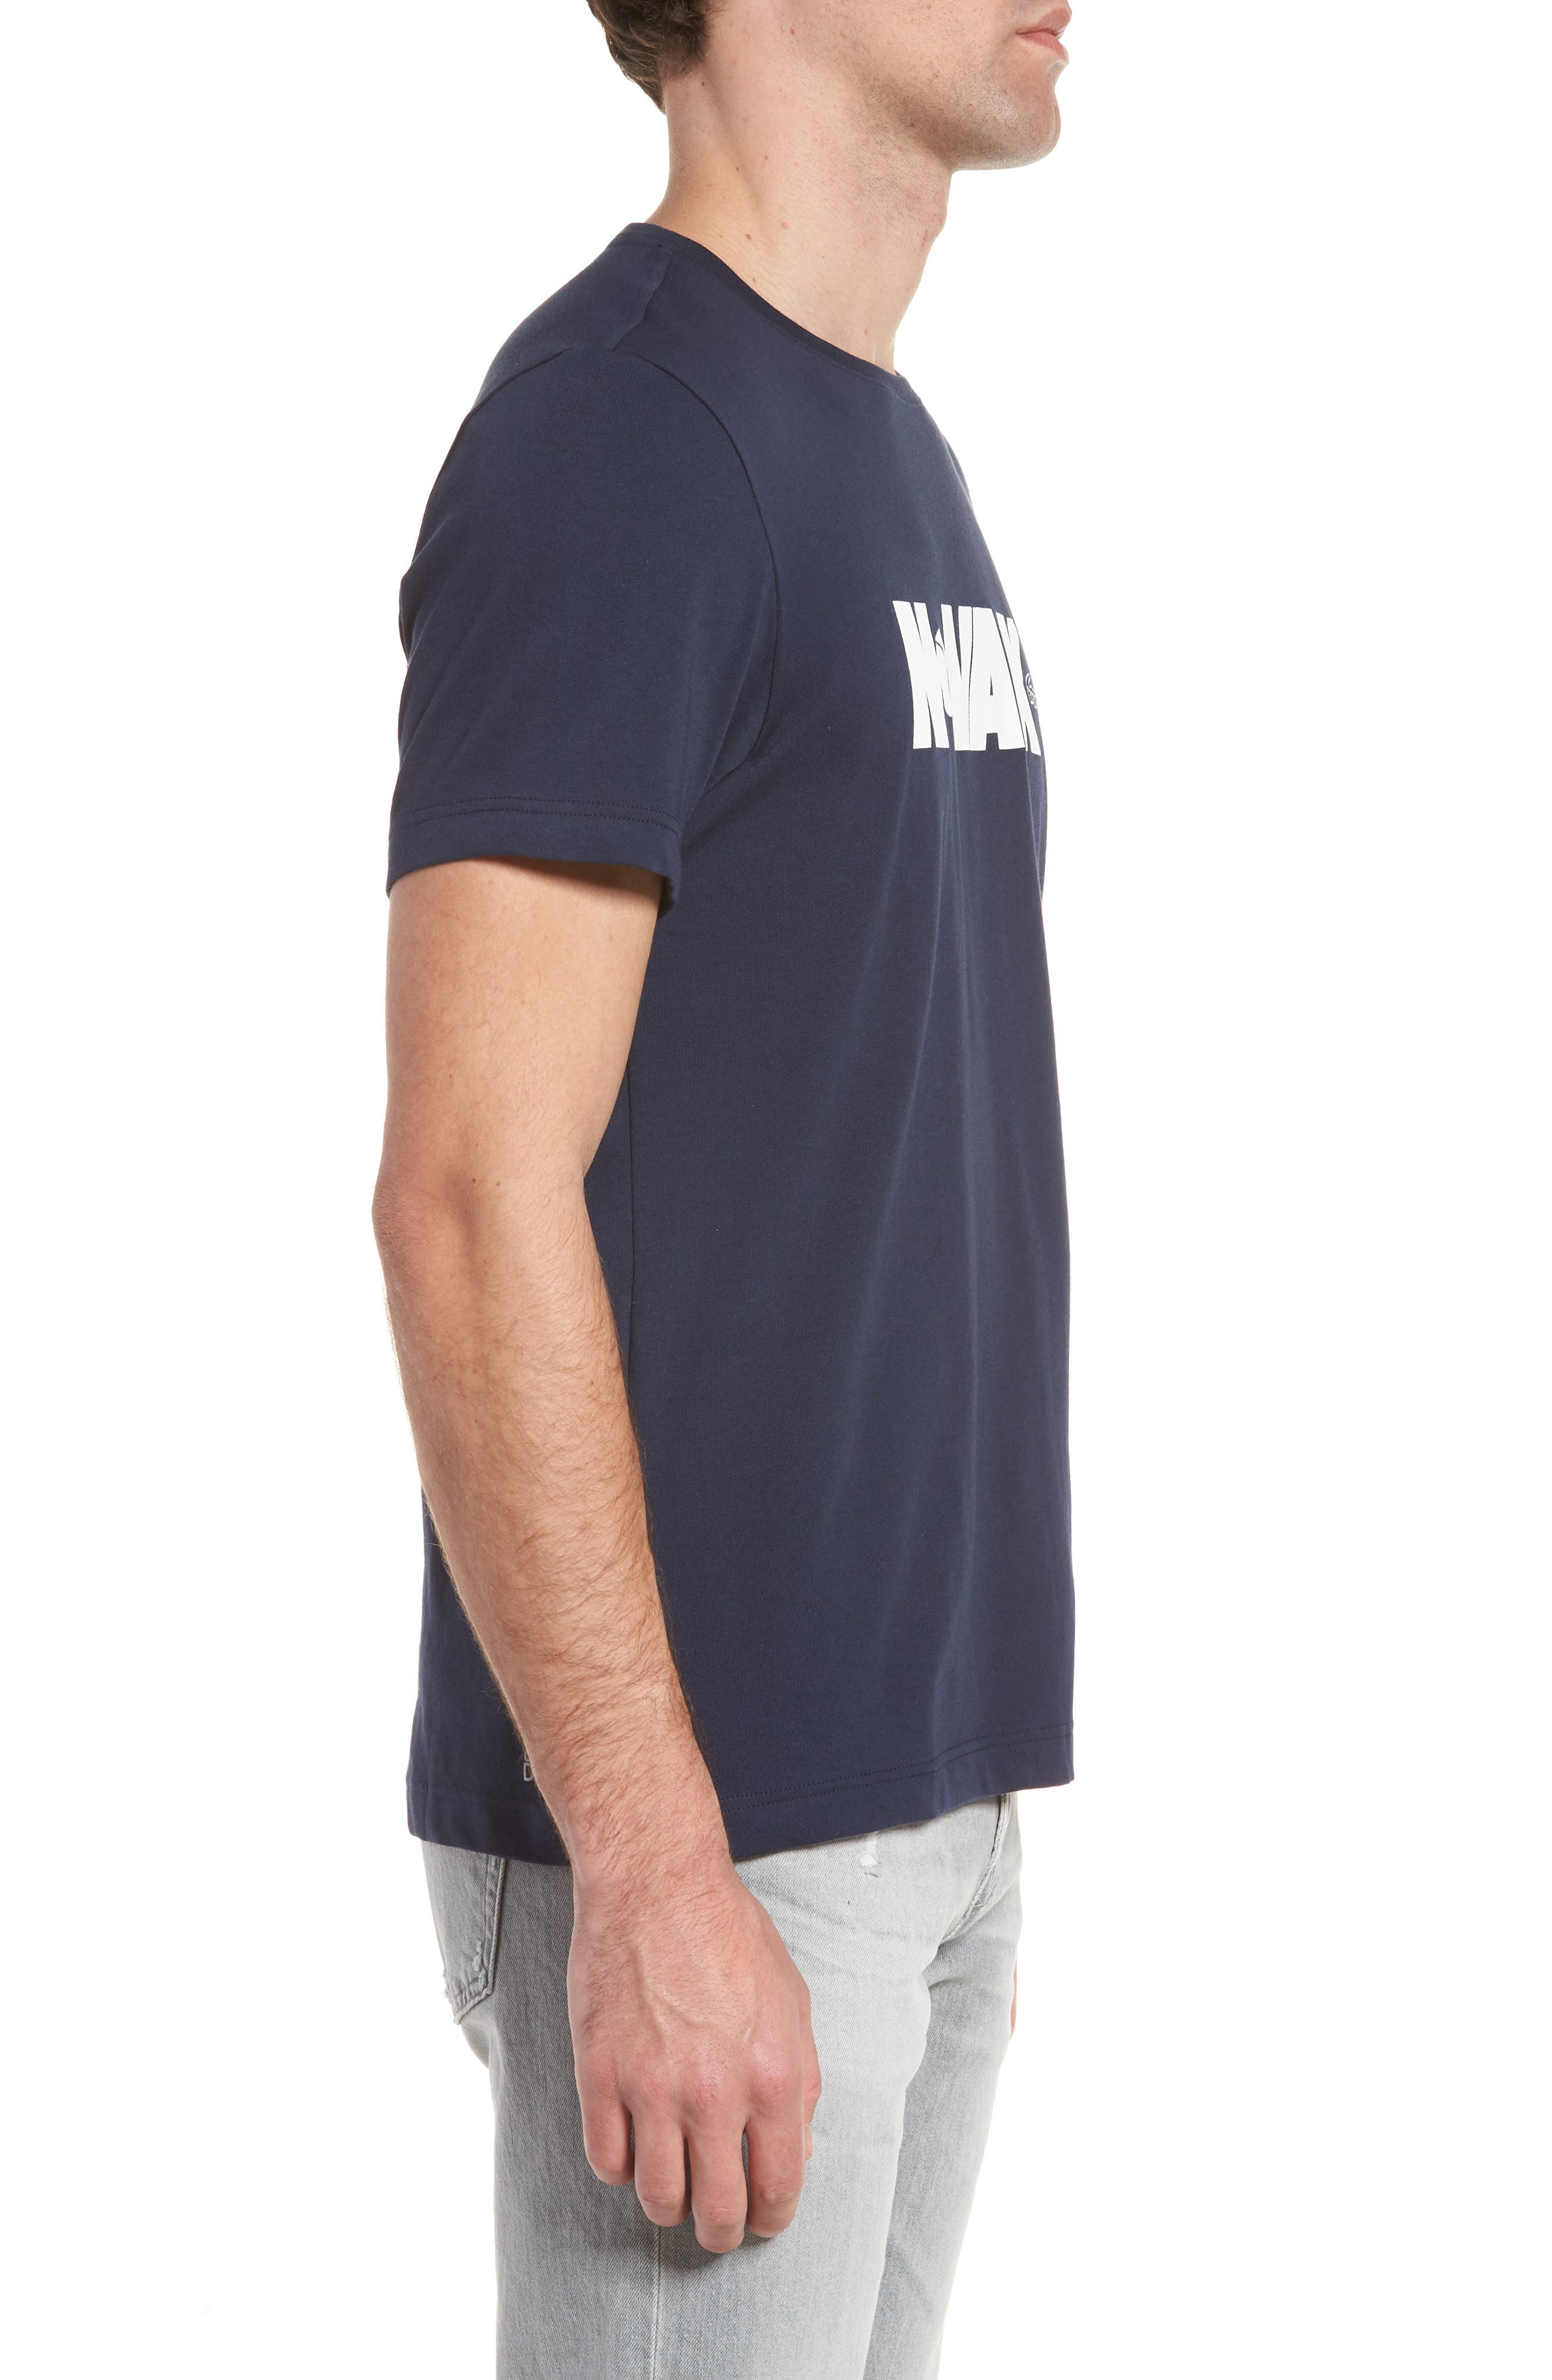 Sport Novak Djokovic Crewneck Tech Jersey T-Shirt,                             Alternate thumbnail 3, color,                             Navy Blue/ White